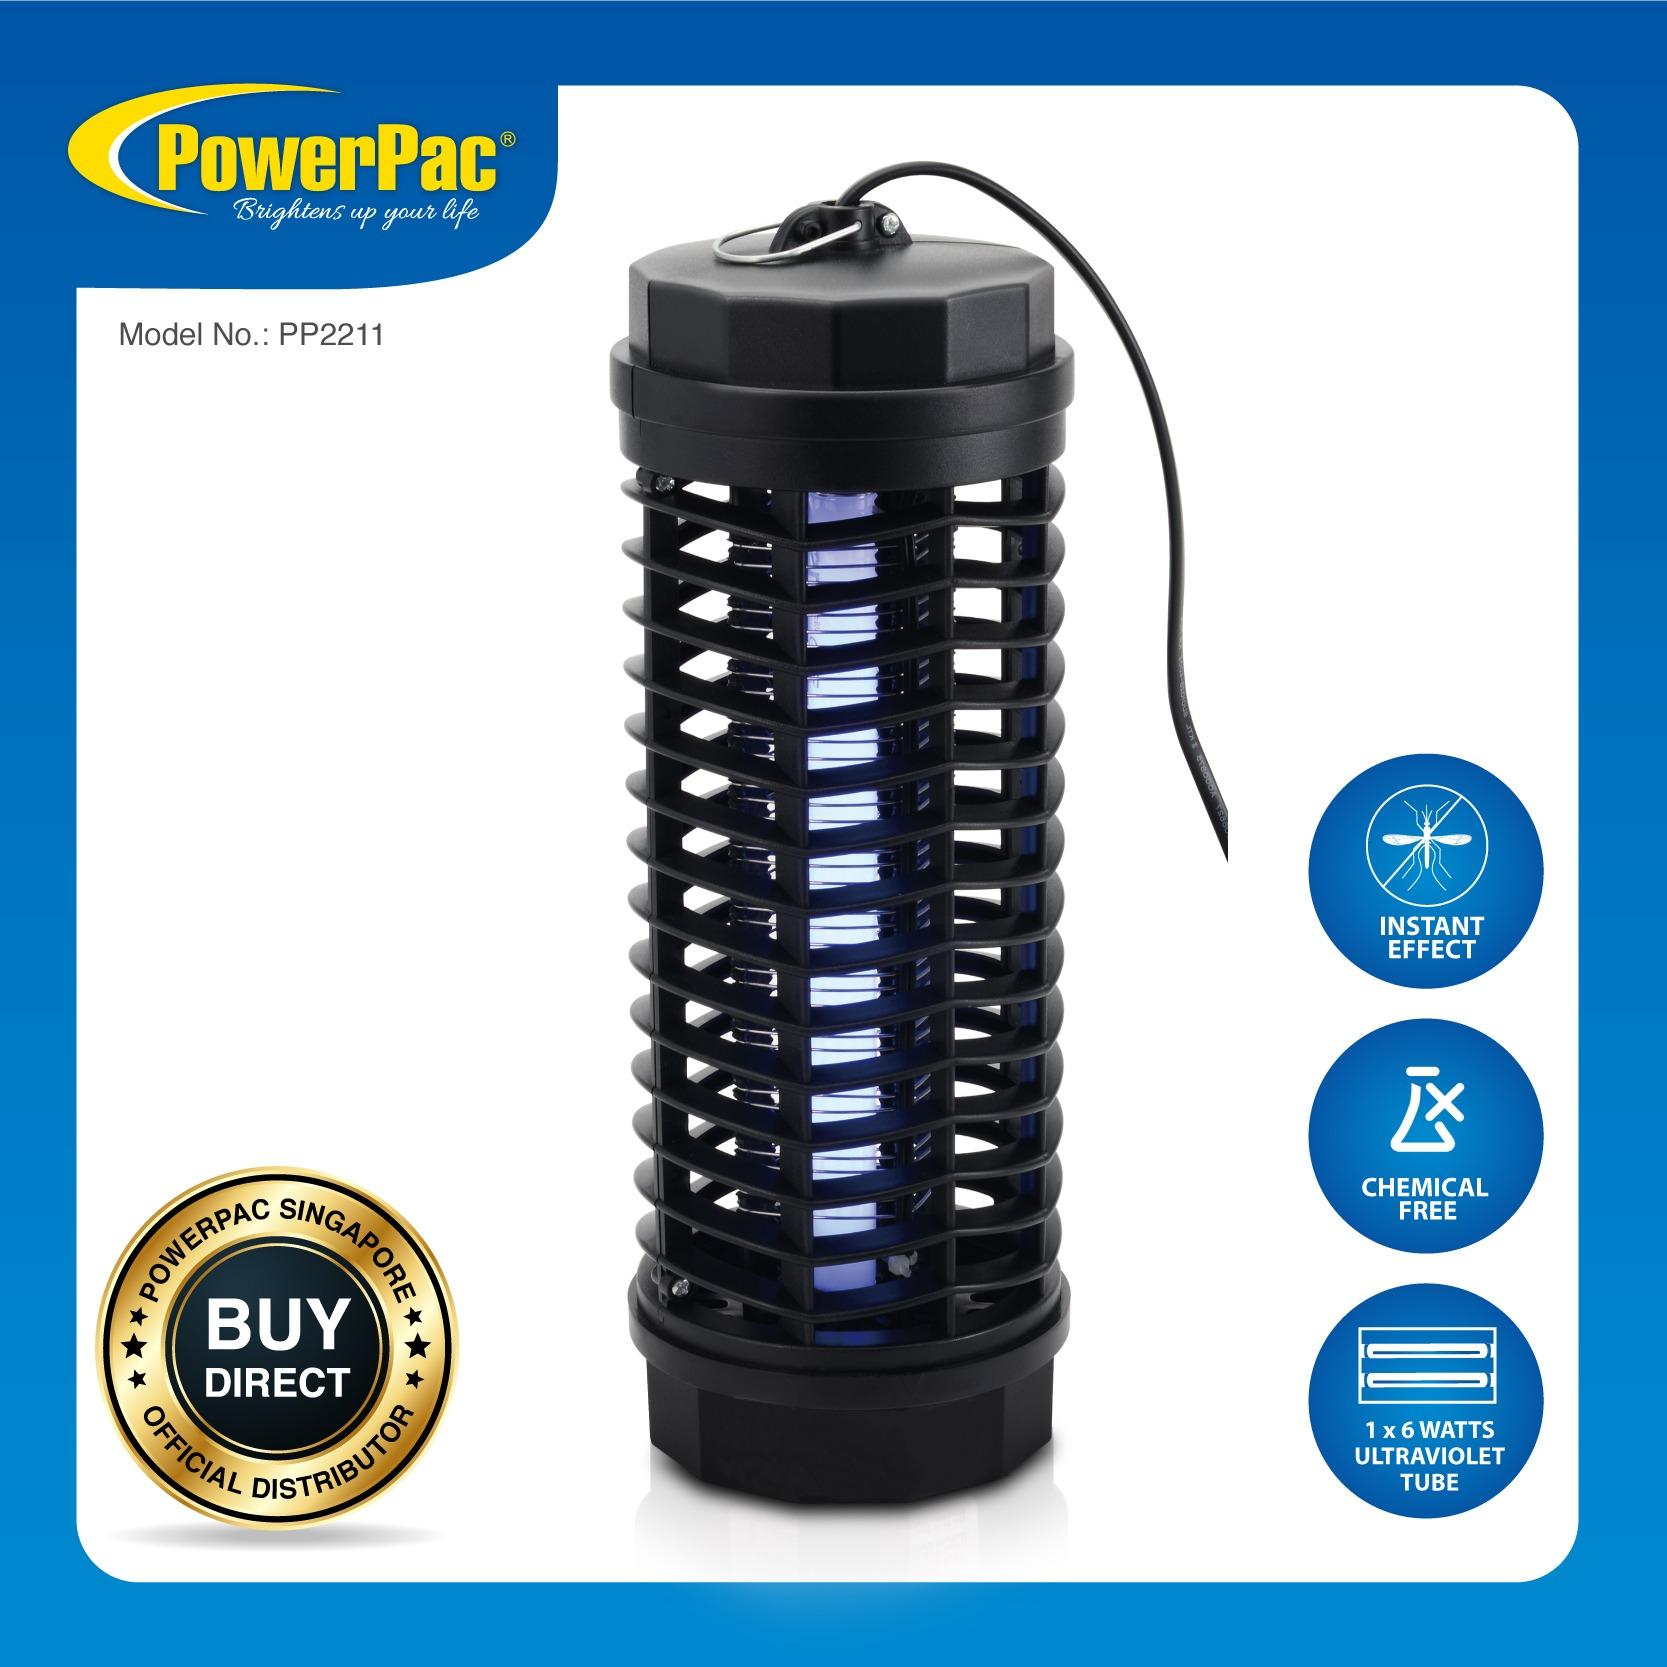 Where Can You Buy Powerpac Electronic Insect Killer Kills Insect And Mosquitoes Instantly Pp2211